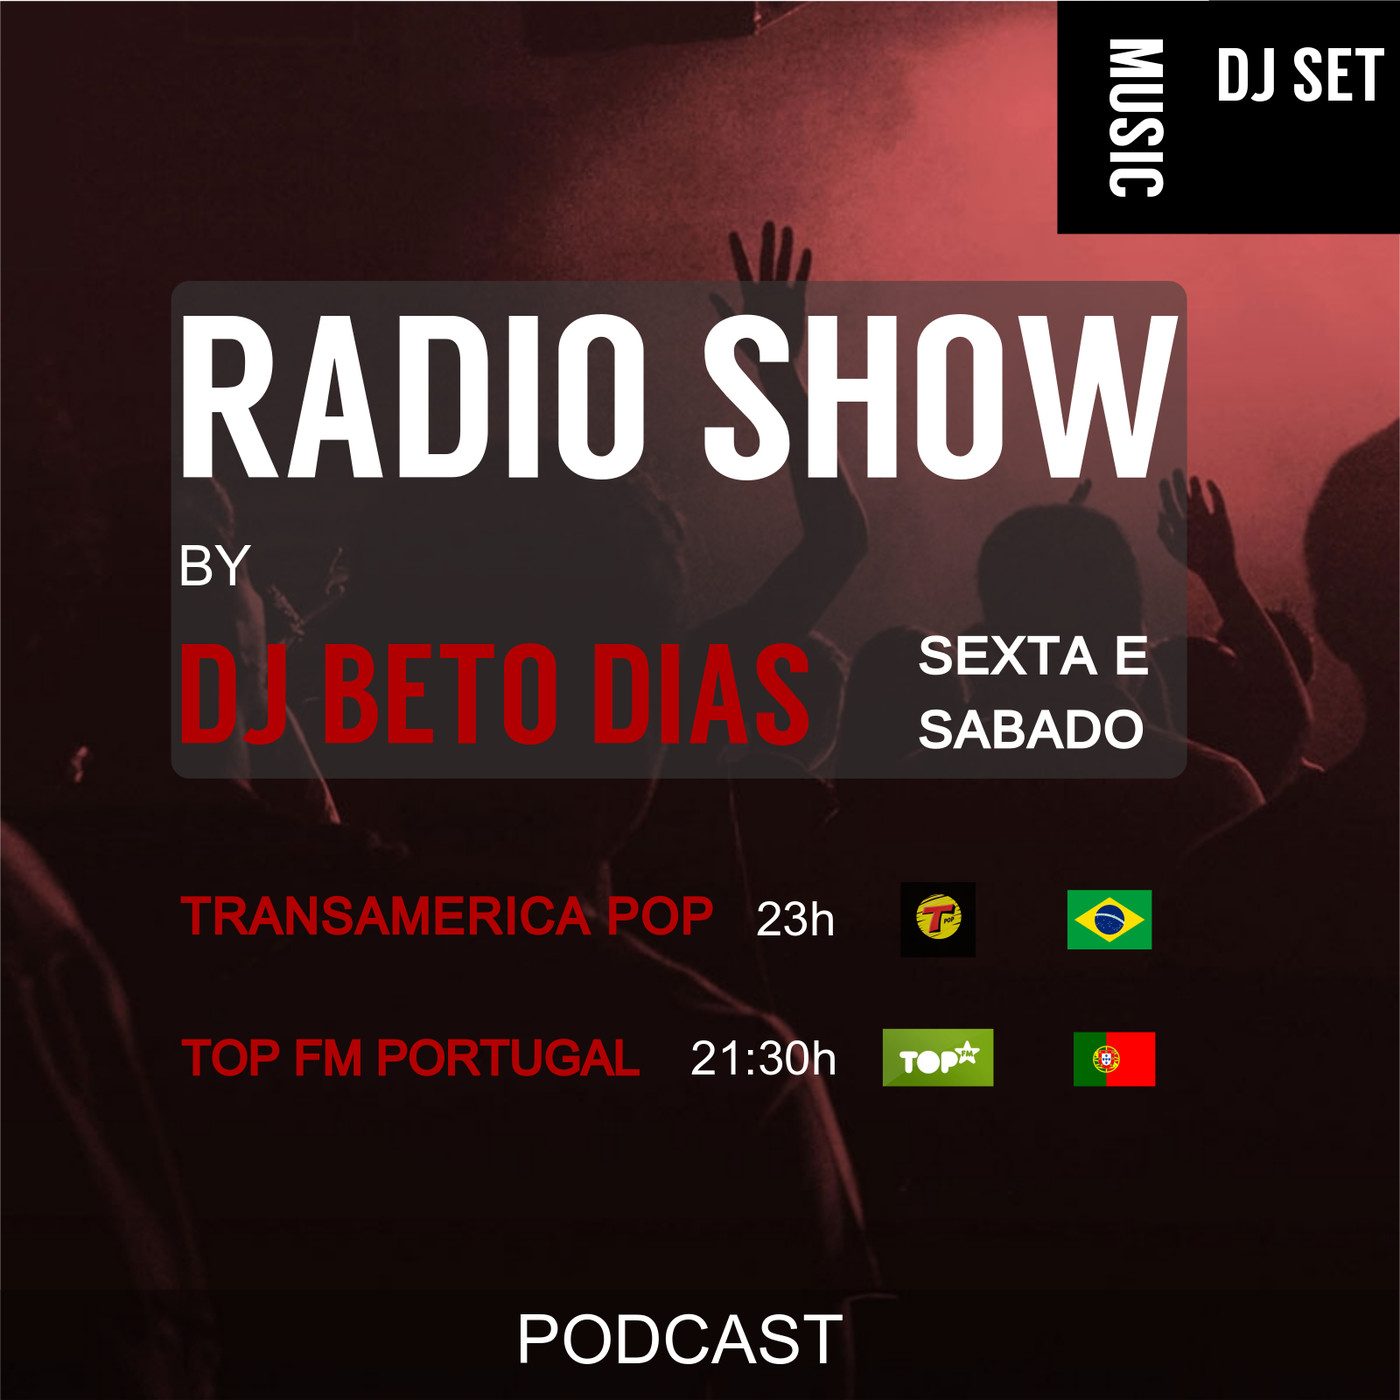 RADIO SHOW by DJ BETO DIAS 22-06 (PODCAST)